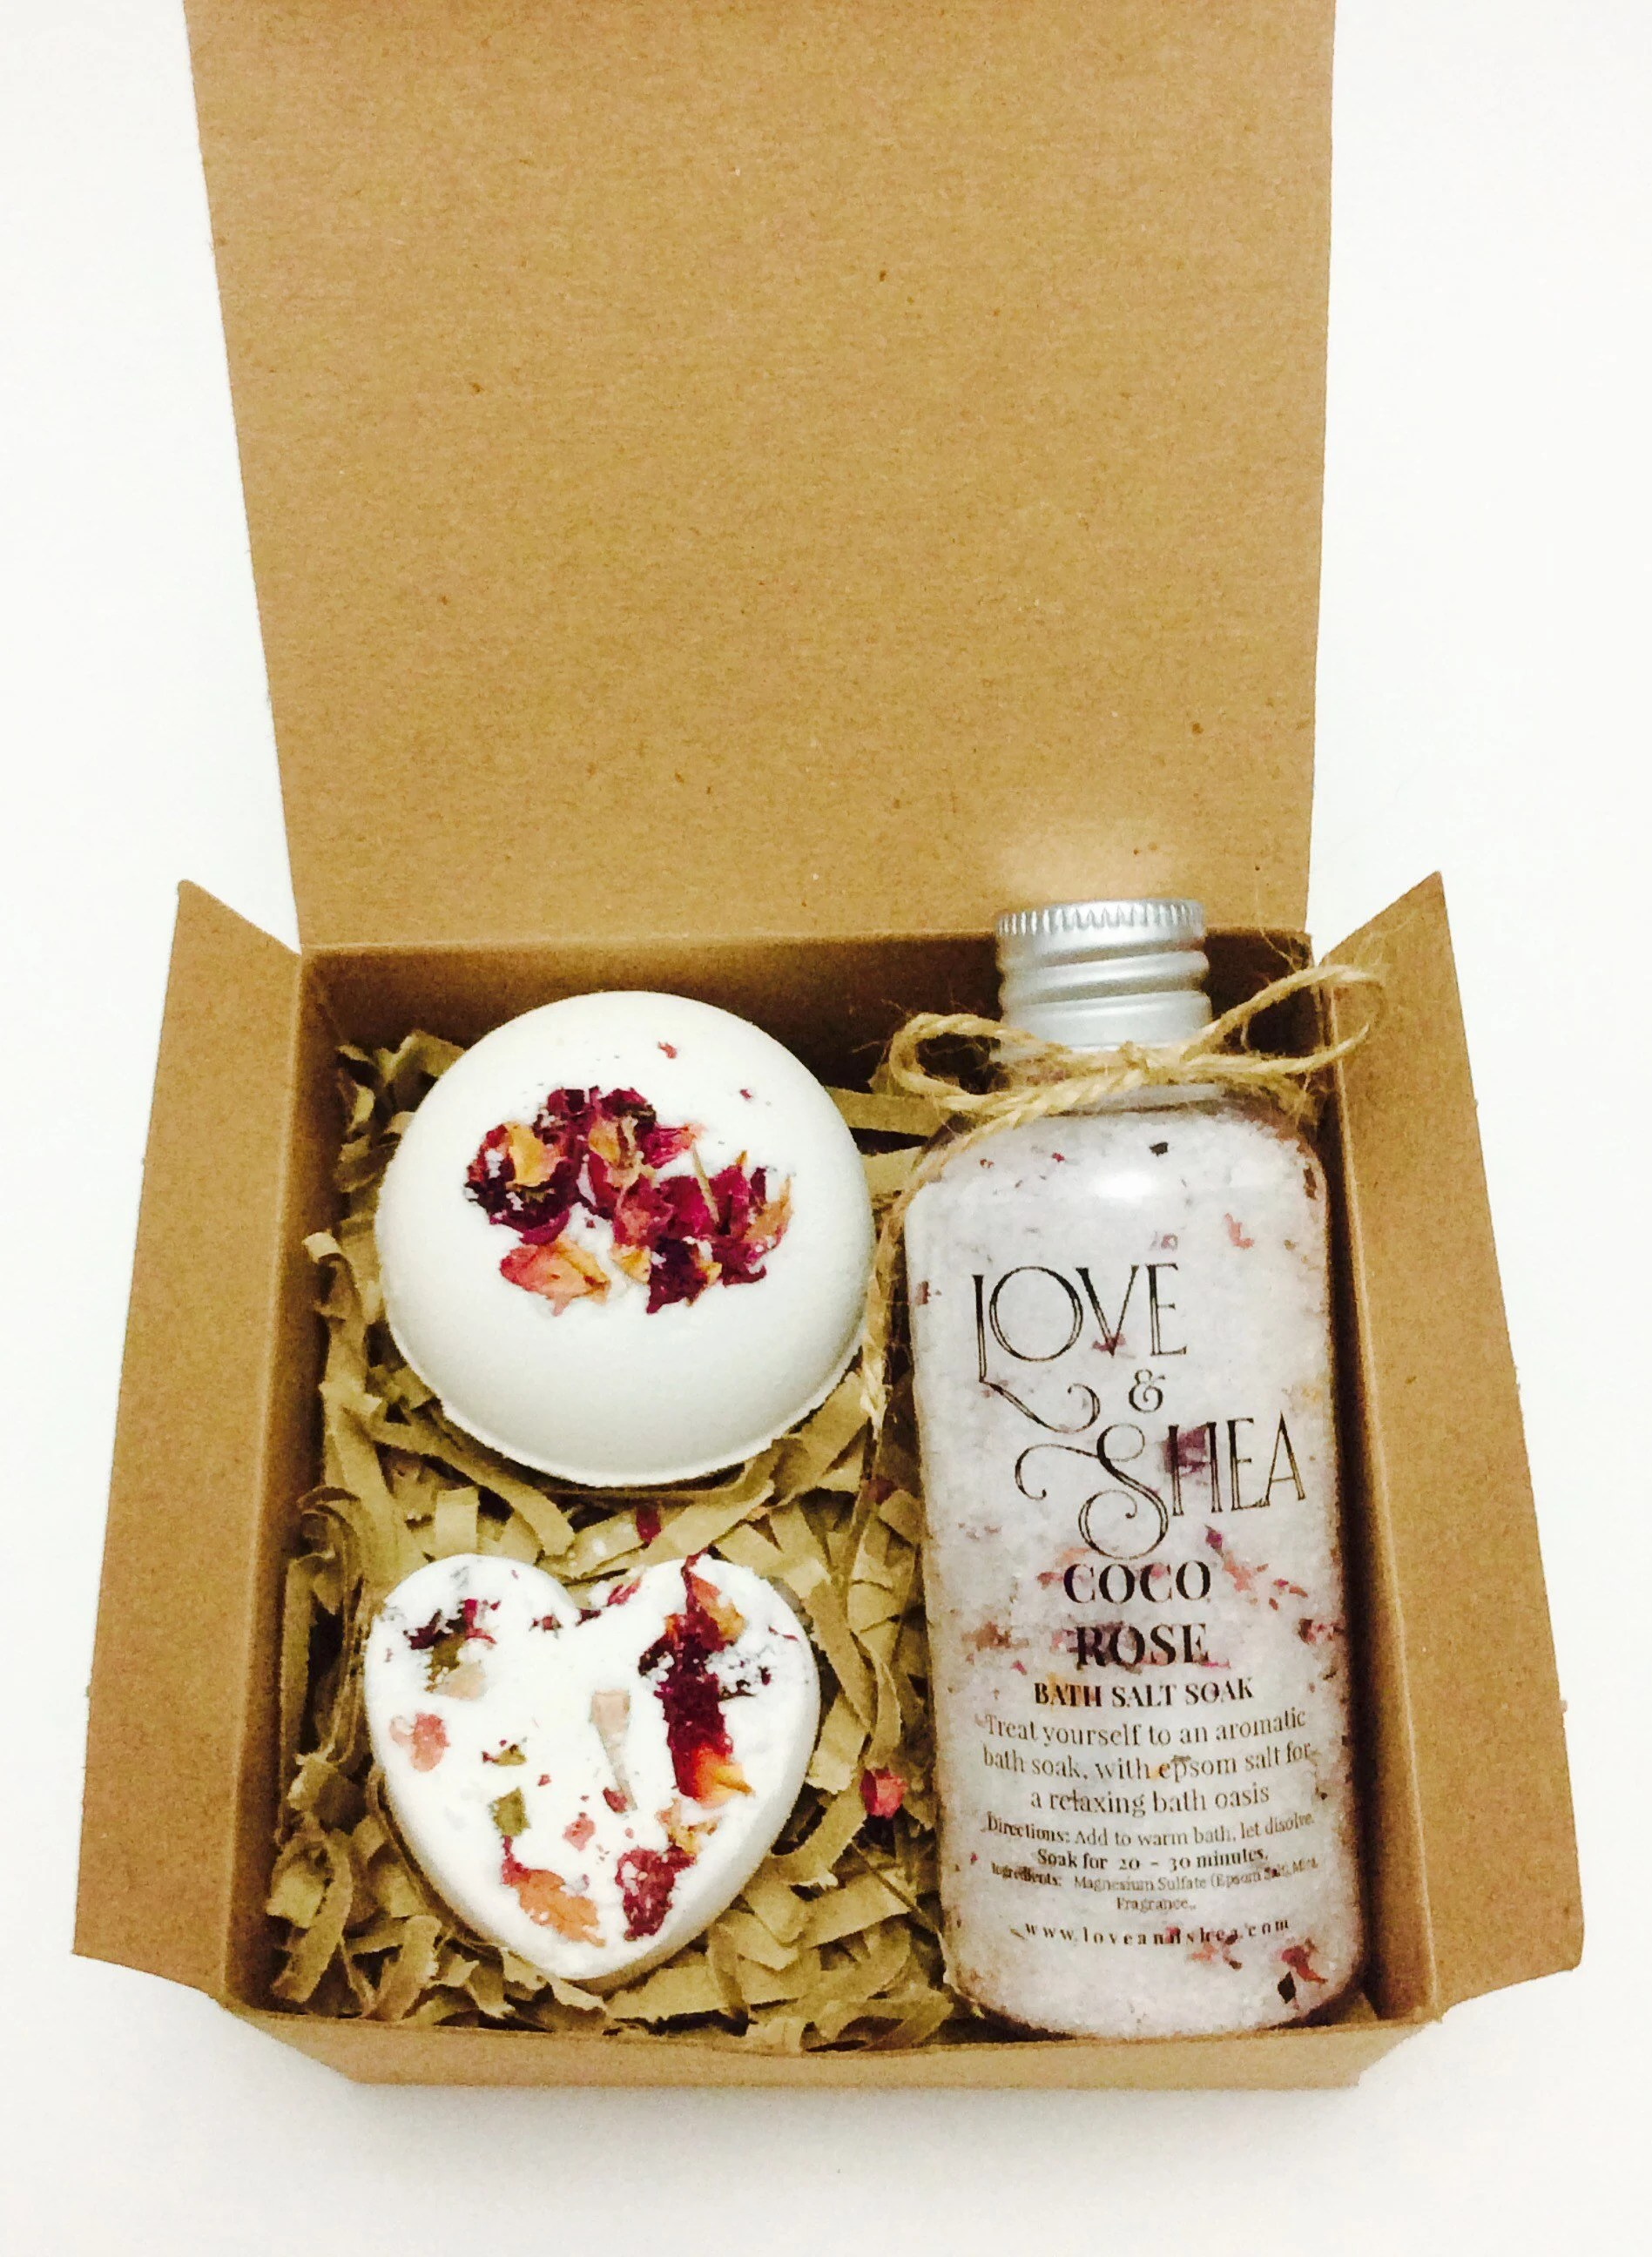 Coco Rose Spa Gift Box, Missing You, I Love you Gift, Long Distance Friendship Gift, Miss You Care Package, Gift Basket for Her, Personalize                                                                    LOVEandSHEA         From shop LOVEandSHEA                               5 out of 5 stars                                                                                                                                                                                                                                                          (264)                 264 reviews                                                                                   CA$23.44                                                                             CA$29.30                                                              CA$29.30                                                                                               (20% off)